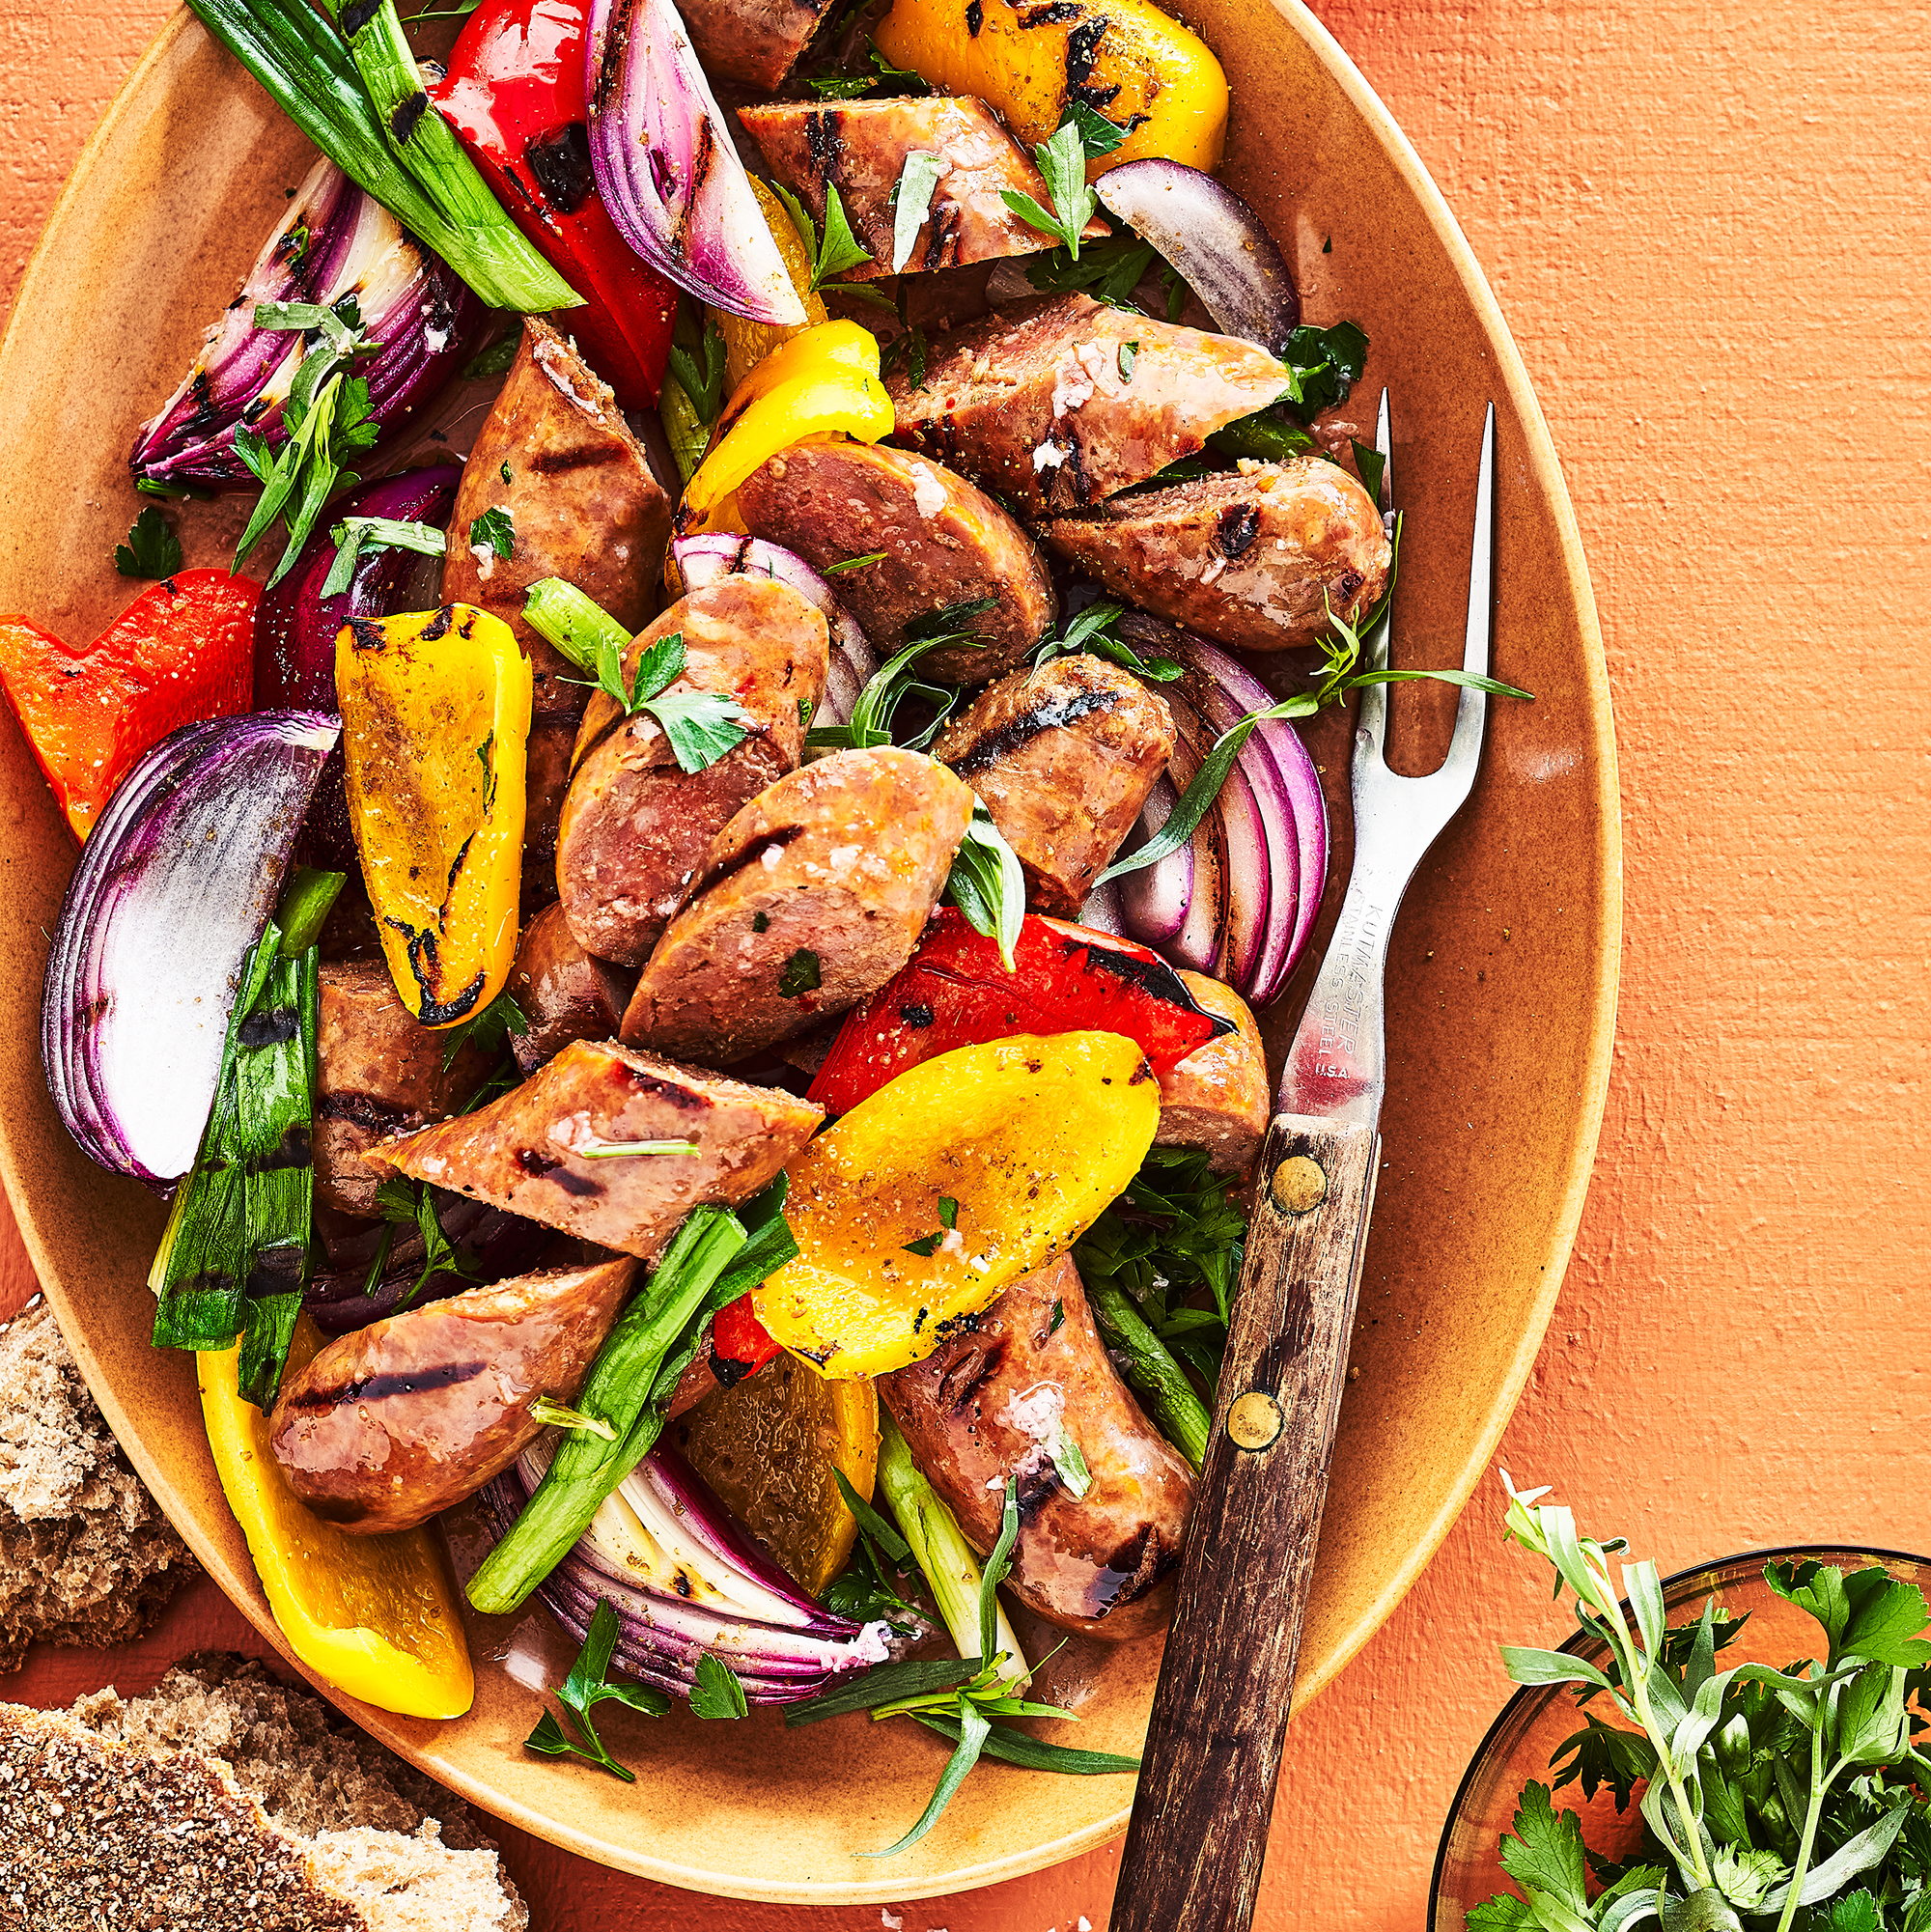 Grilled Sausage, Peppers & Onions with Herb Vinaigrette